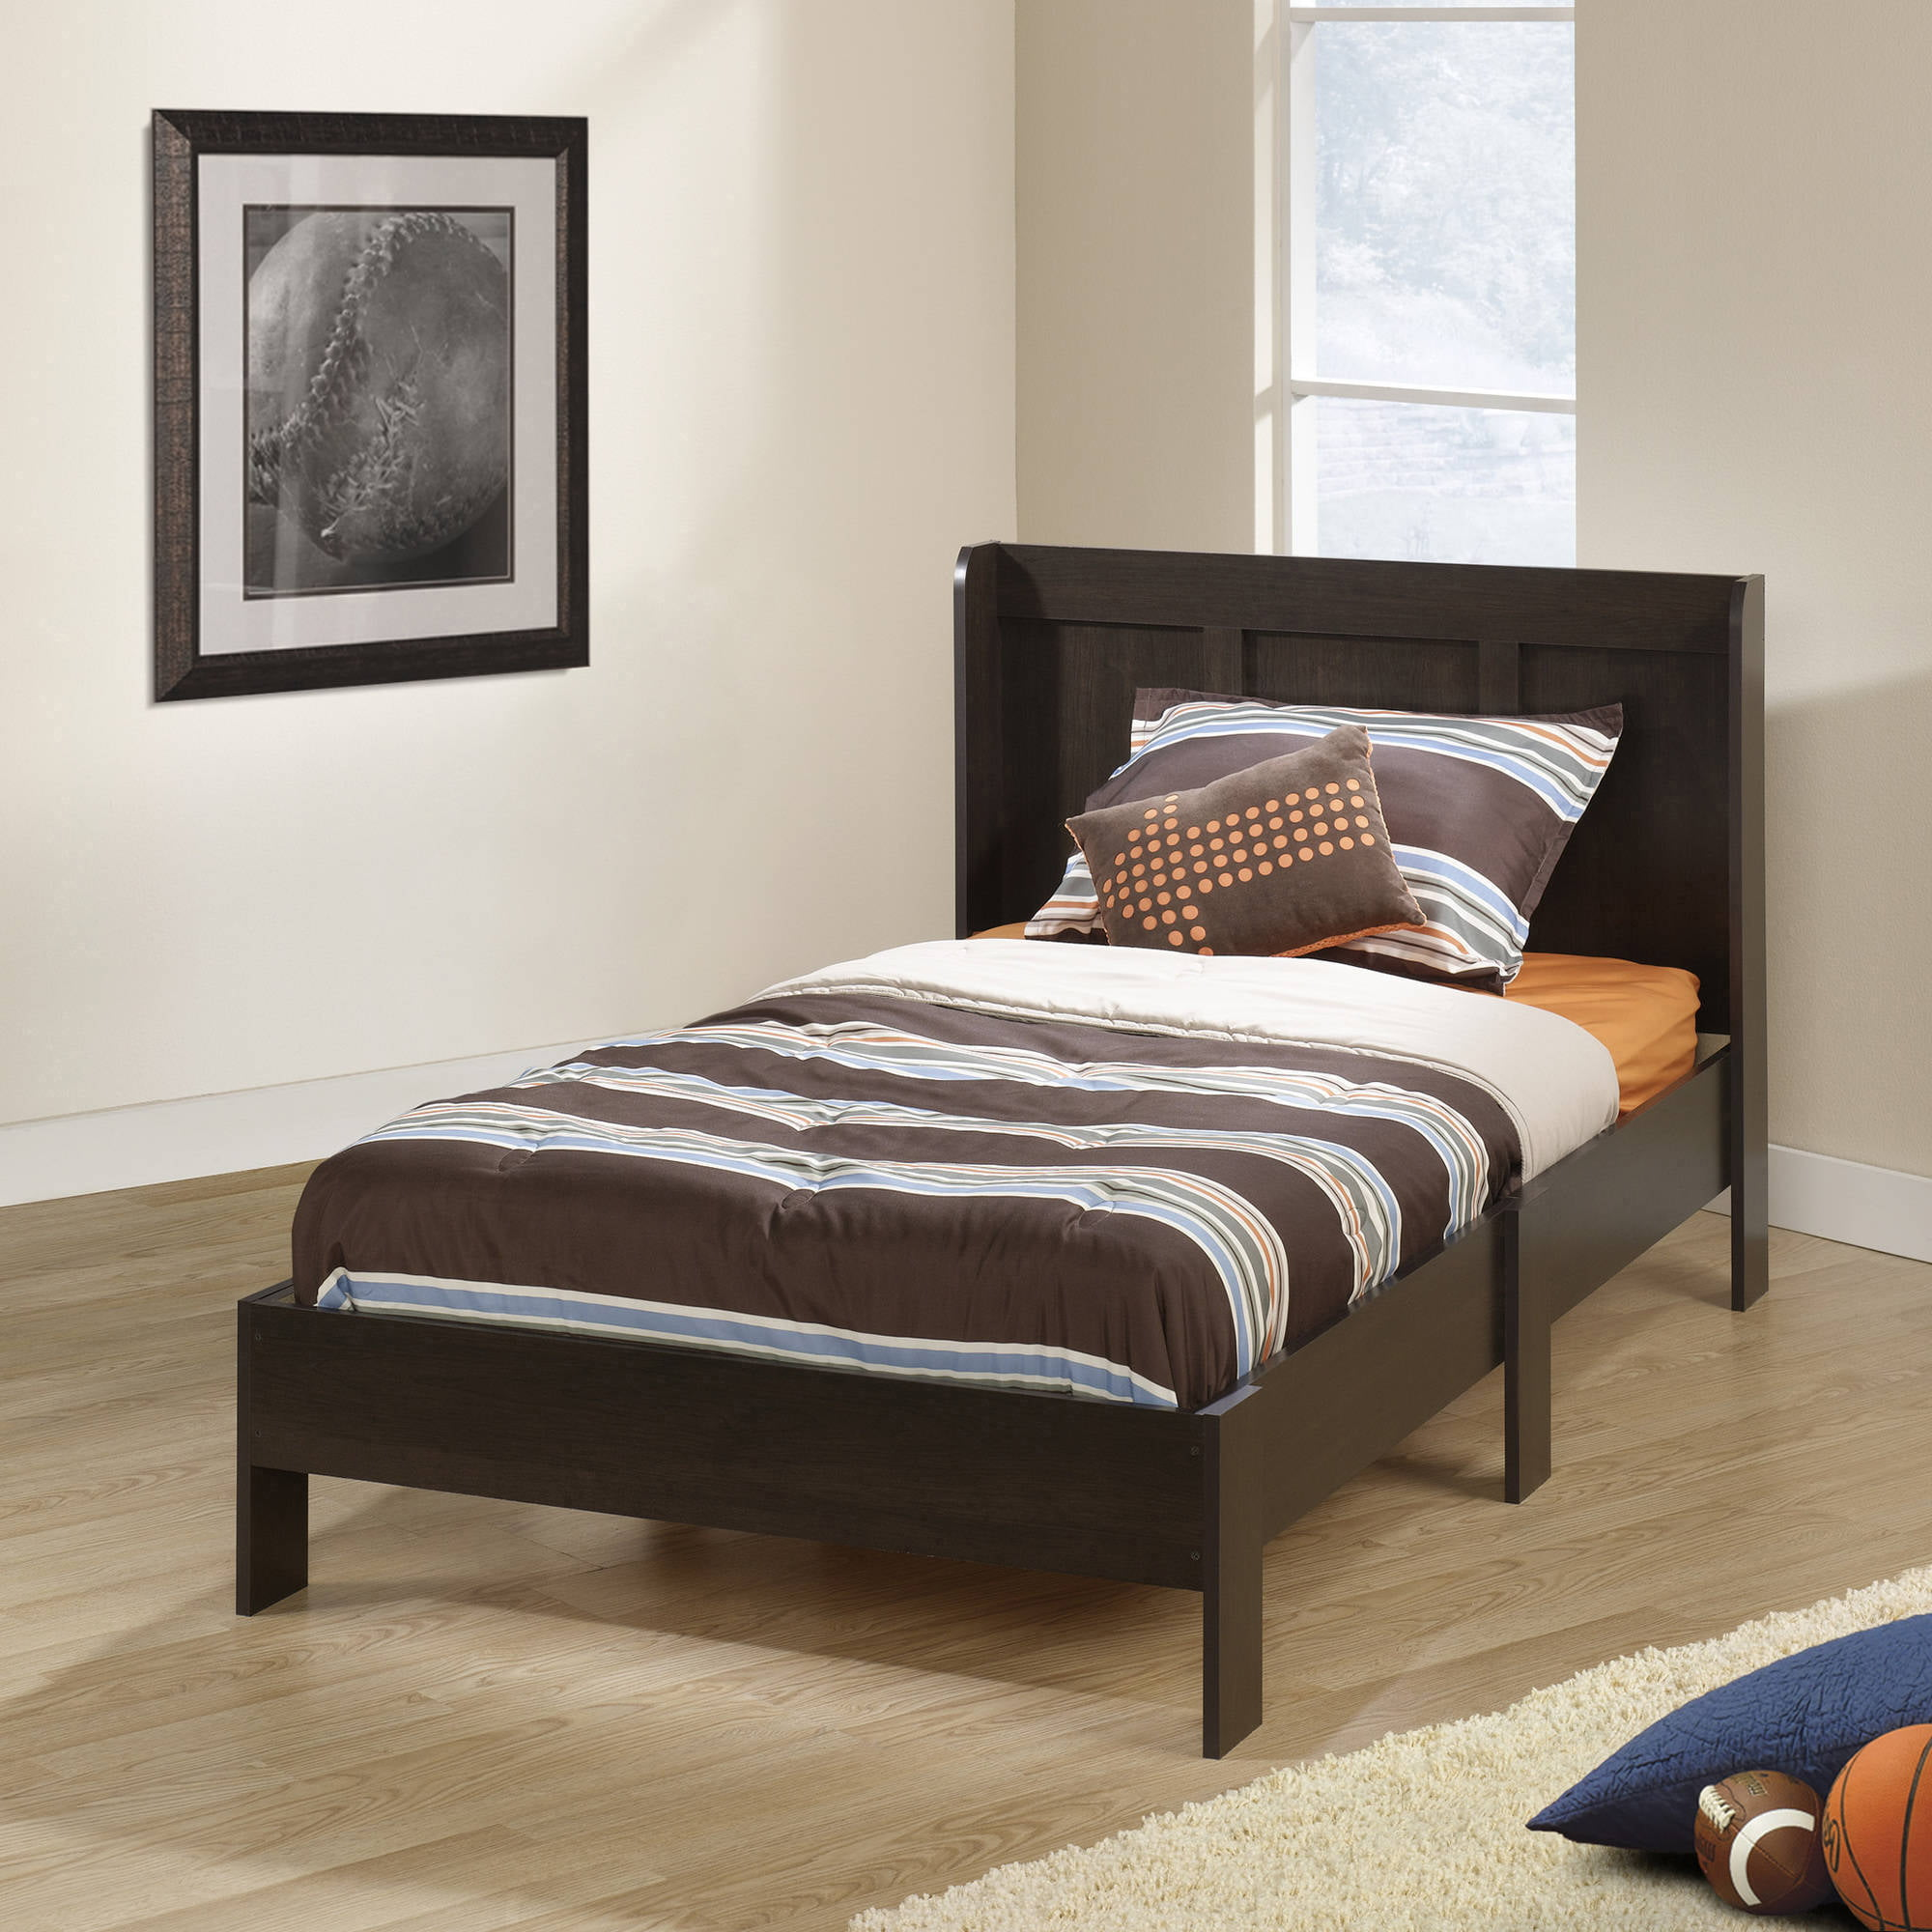 sauder parklane twin platform bed and headboard multiple finishes  - sauder parklane twin platform bed and headboard multiple finishes walmartcom